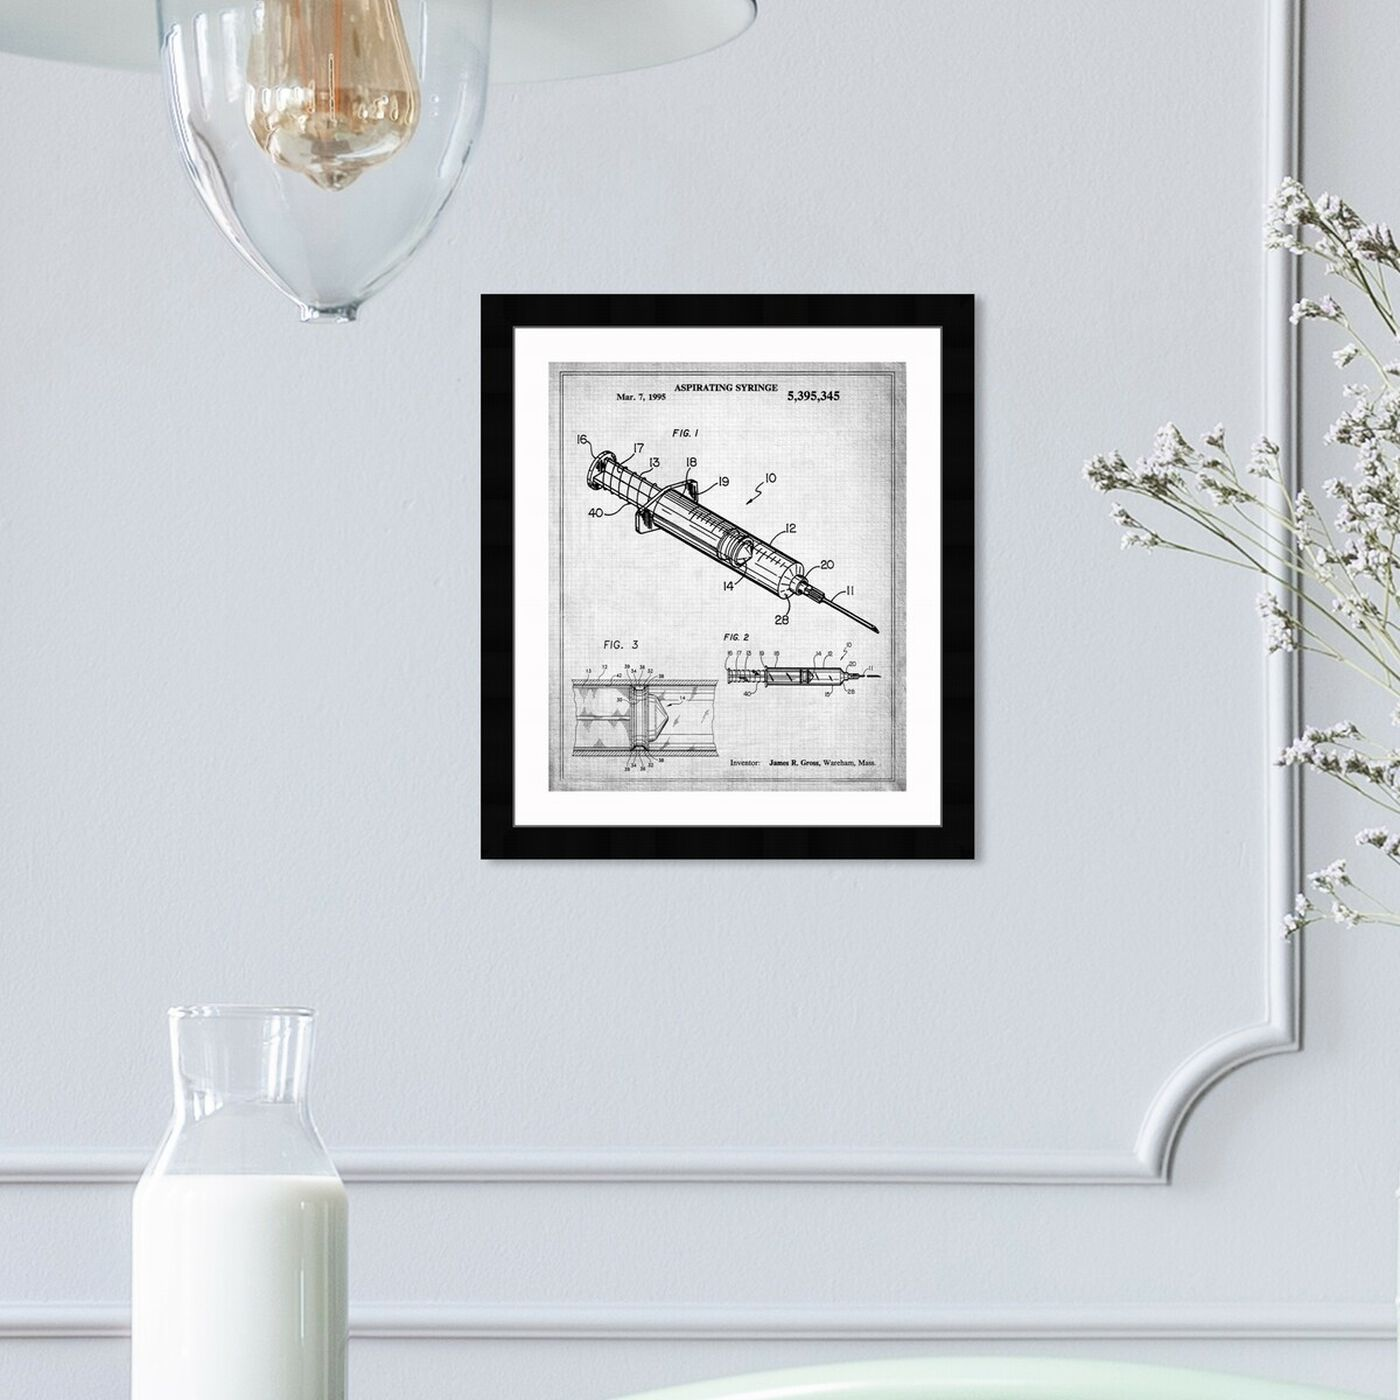 Hanging view of Aspirating Syringe 1995 featuring education and office and scientist art.